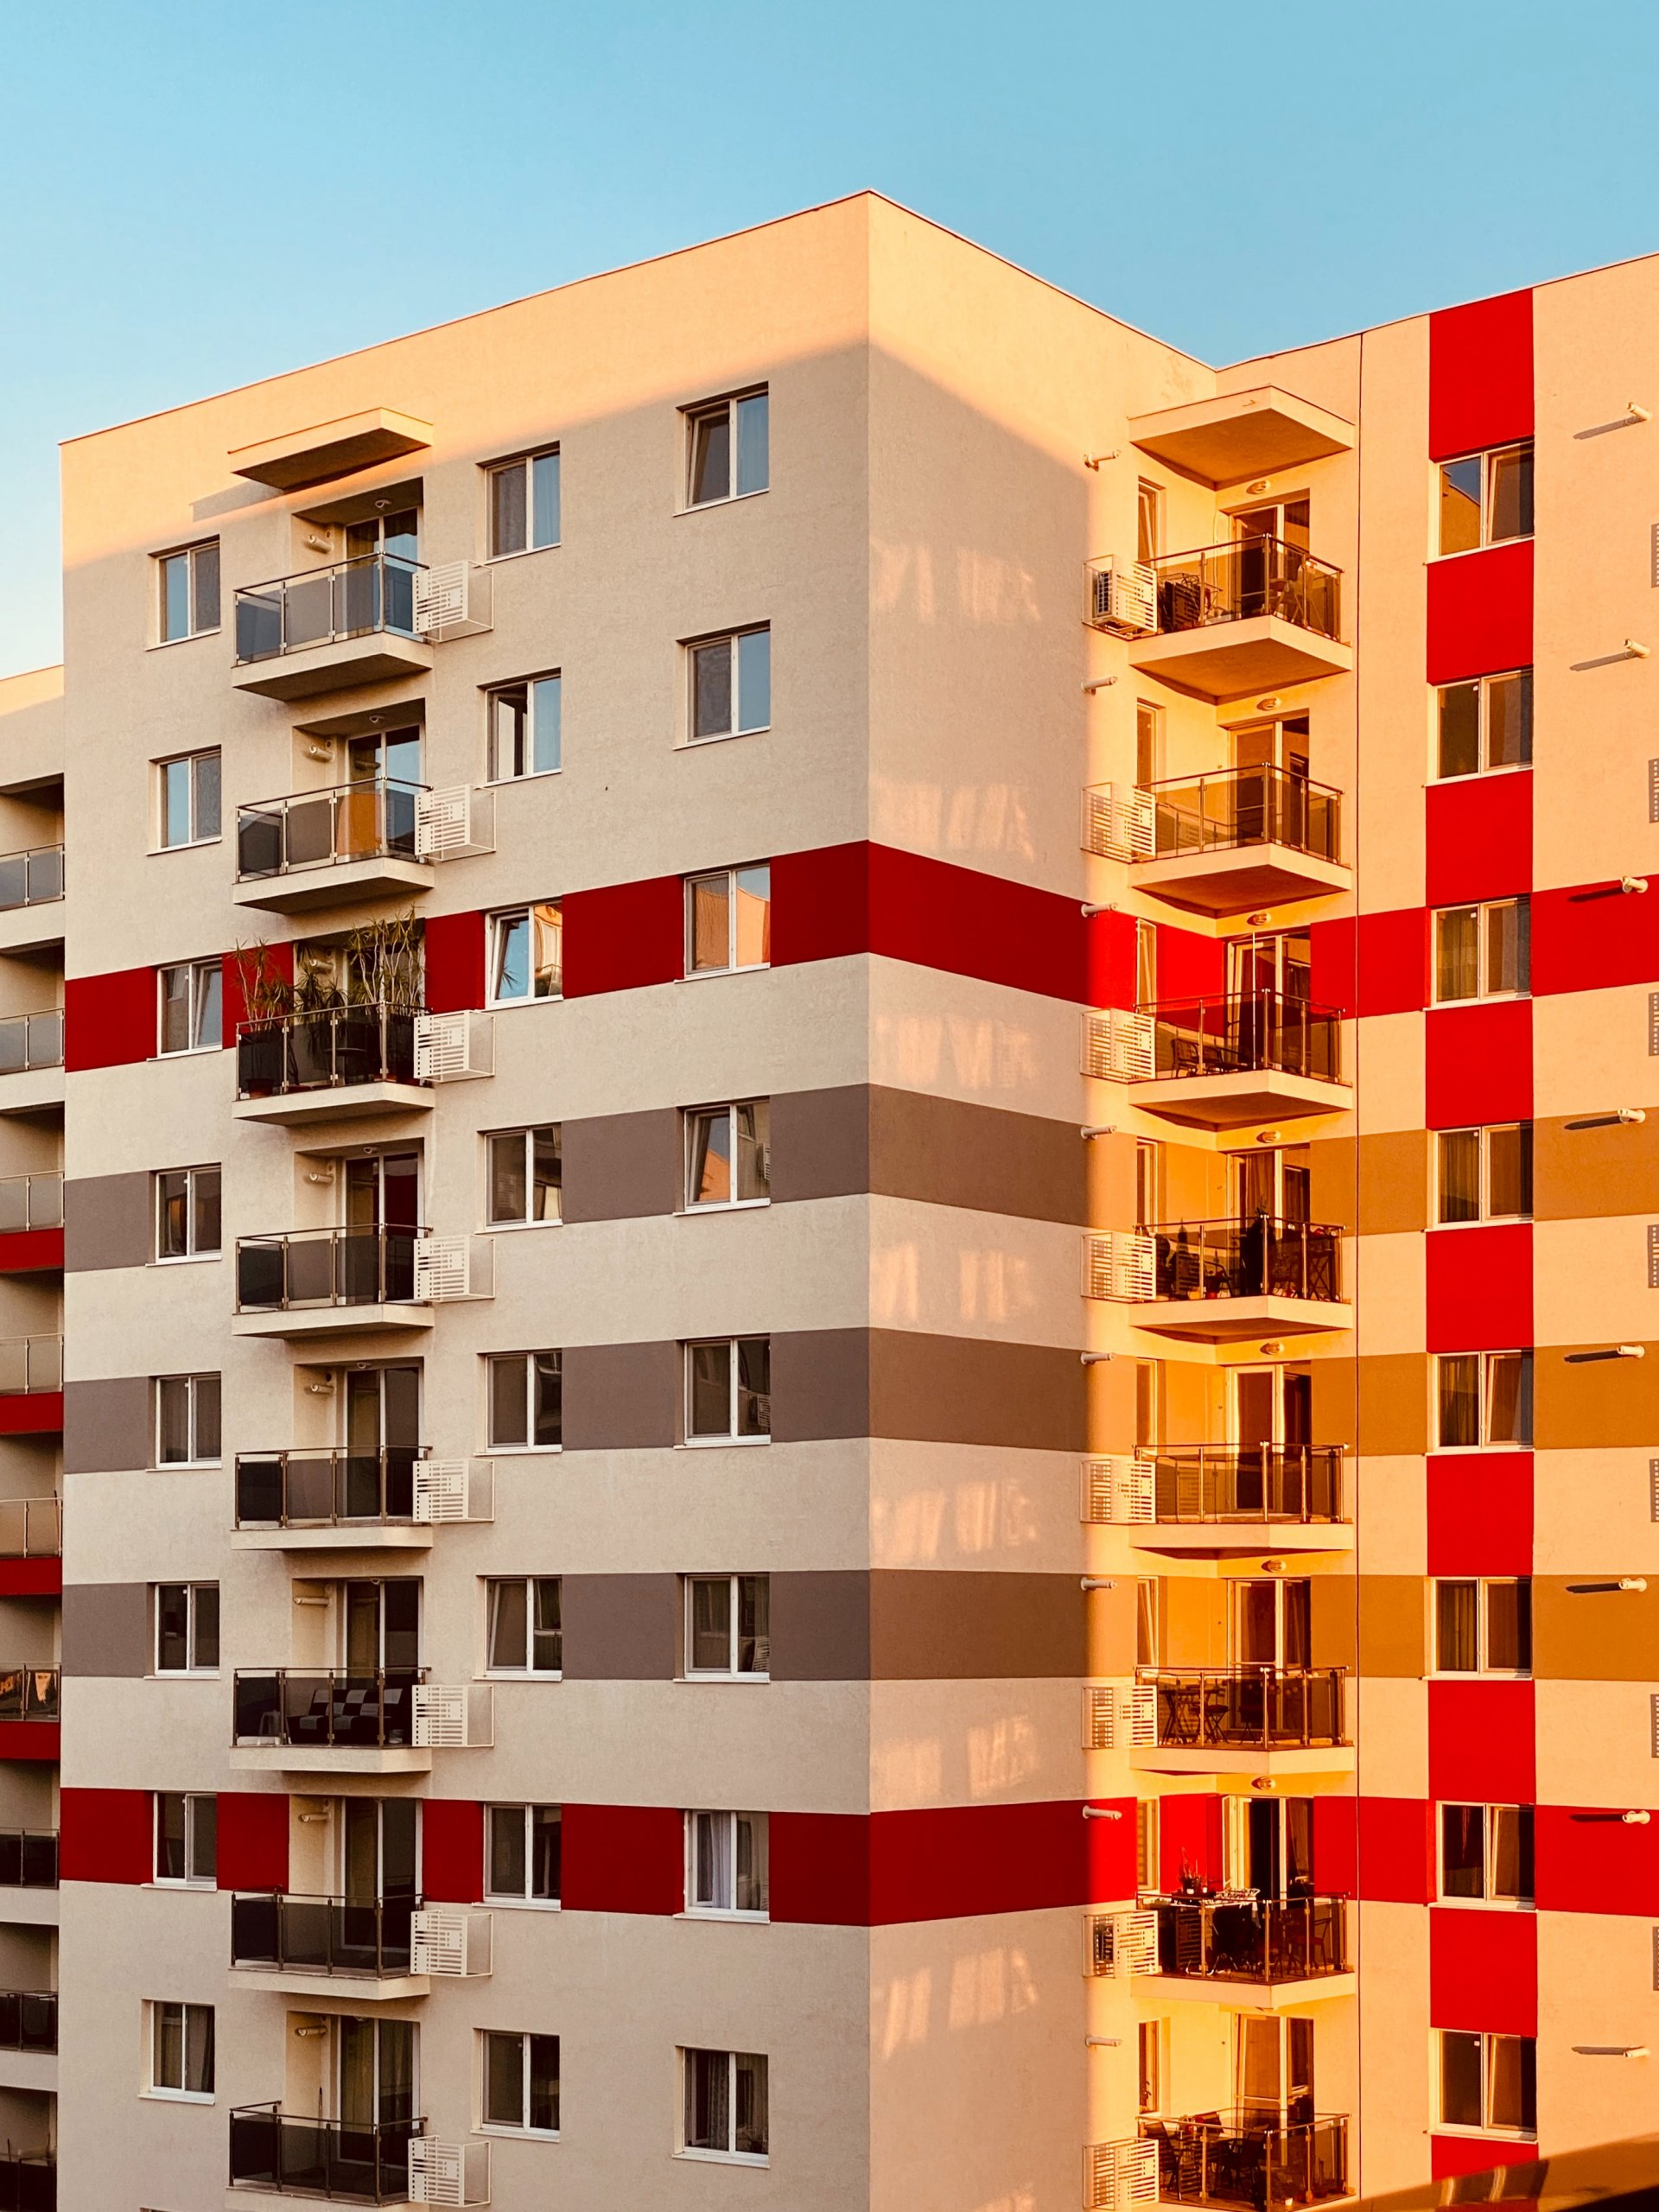 Block of flats used for tpas article header image